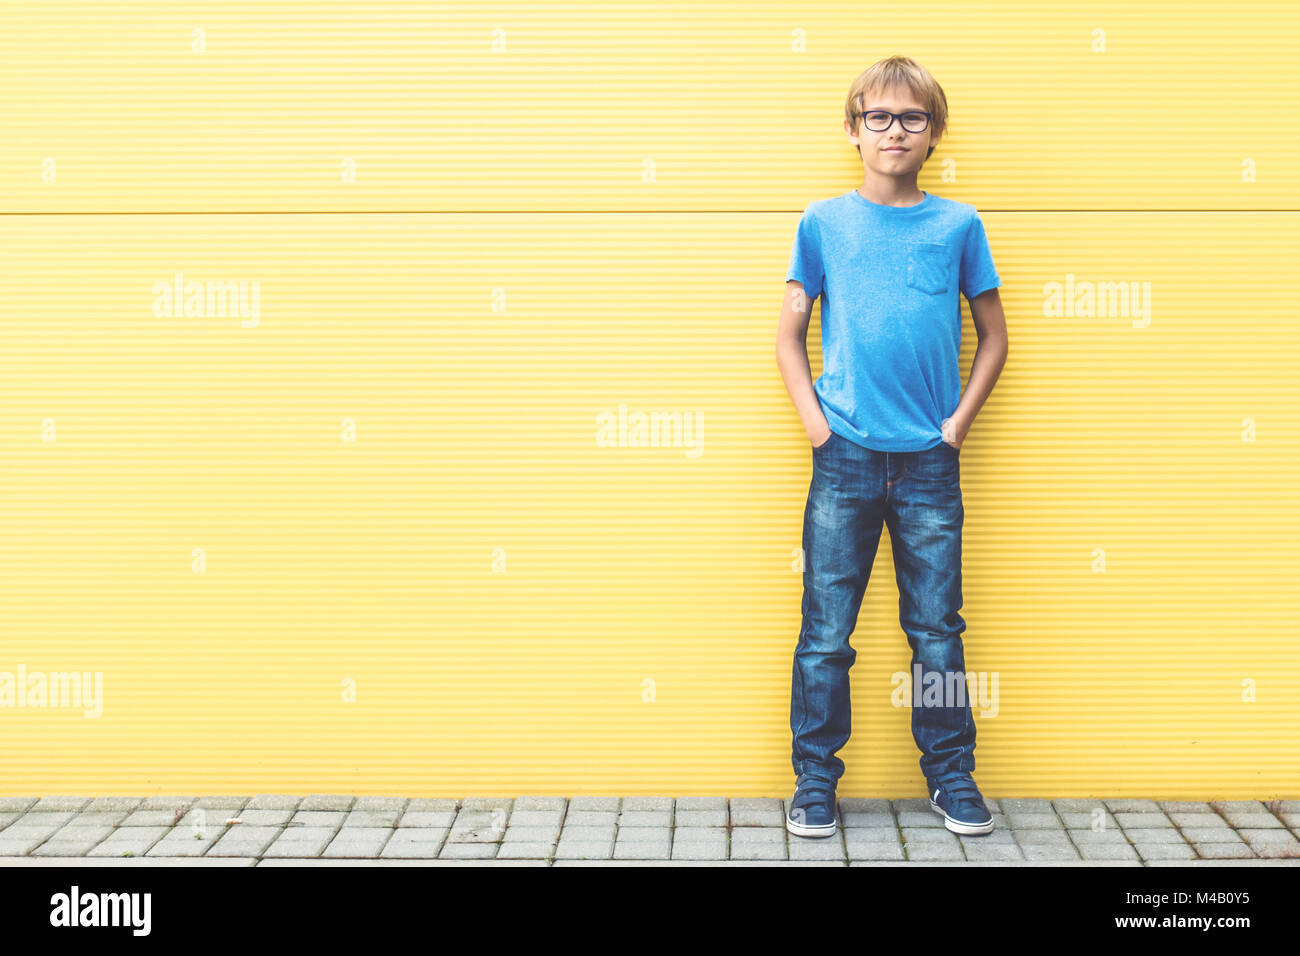 Boy with glasses standing near yellow wall outdoors - Stock Image